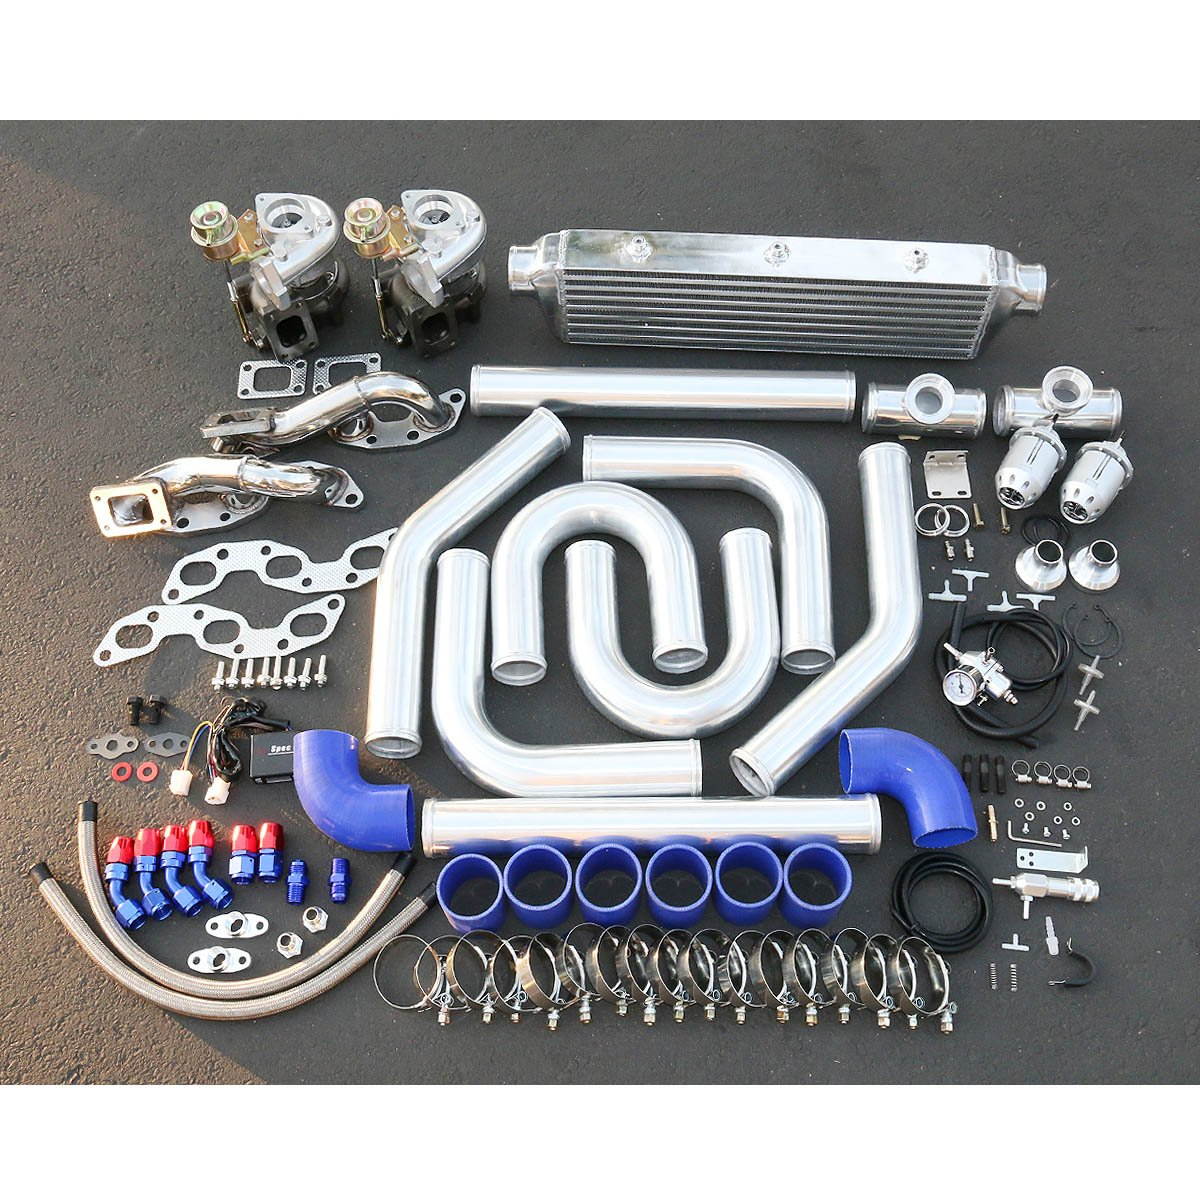 For Nissan 300zx High Performance 14pcs T25 Twin Turbo Mazda Wiring Harness Upgrade Installation Kit Automotive